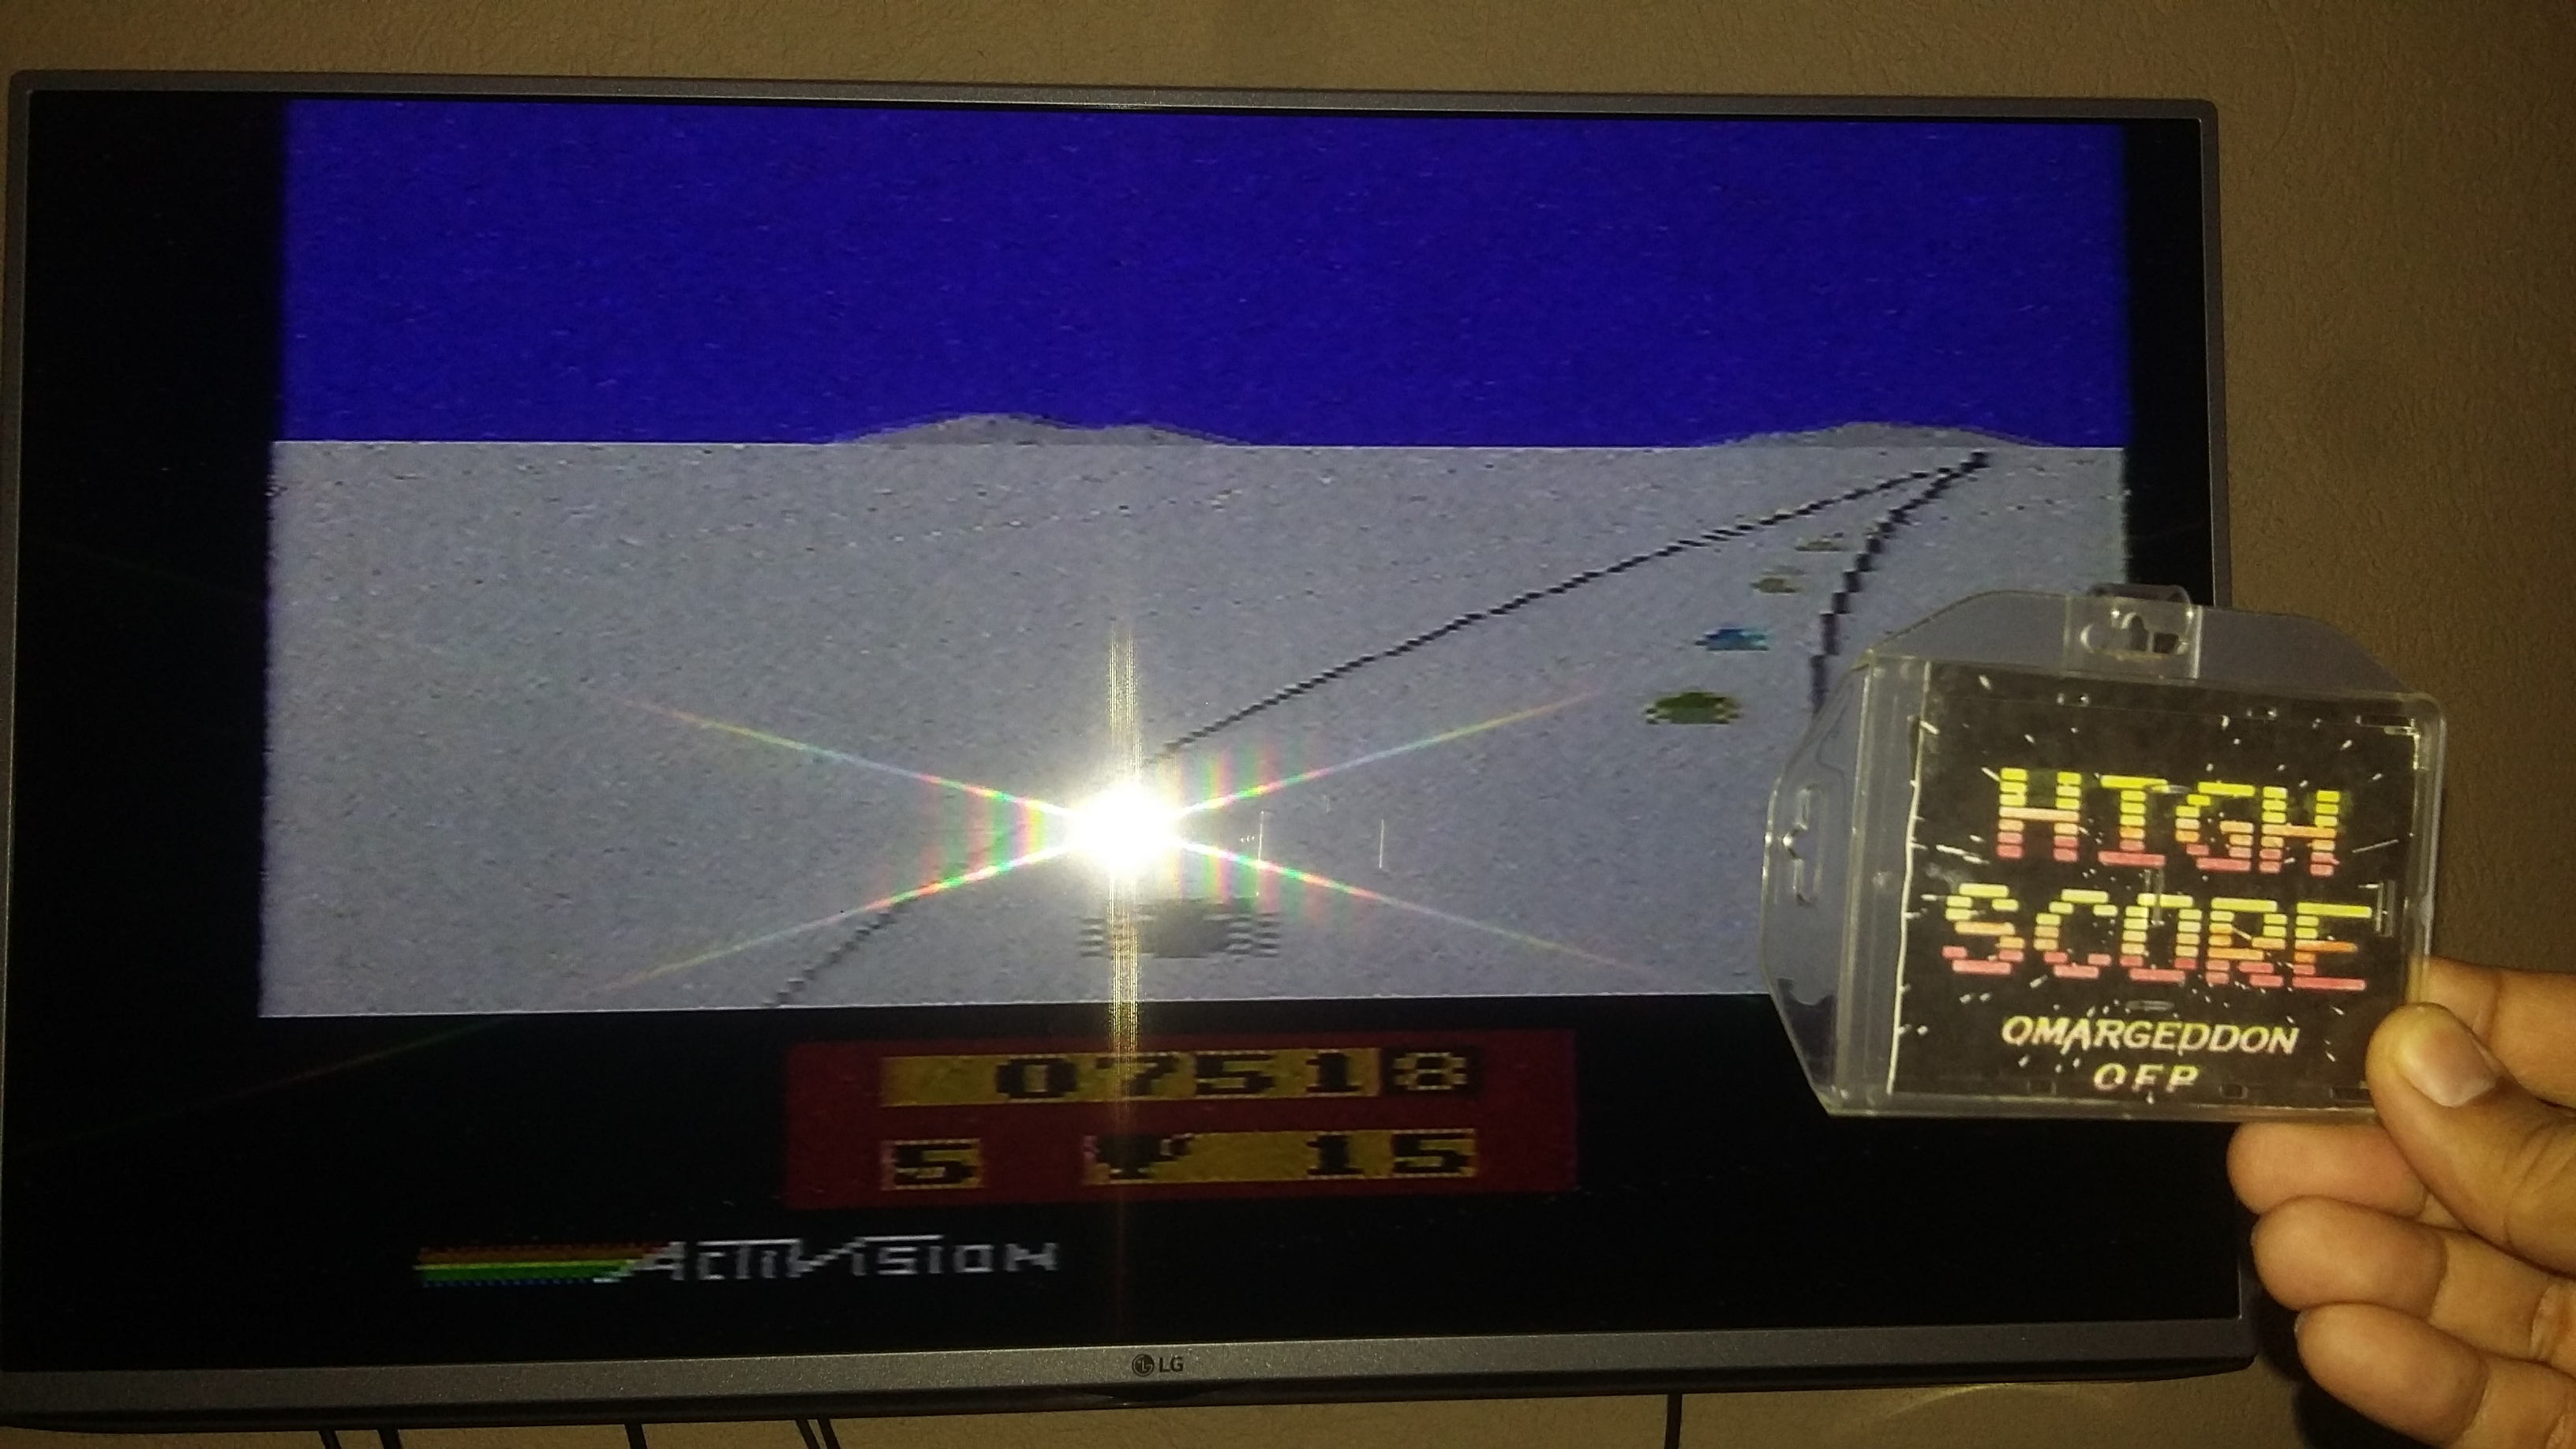 omargeddon: Enduro (Atari 2600 Expert/A) 752 points on 2018-10-26 18:54:01